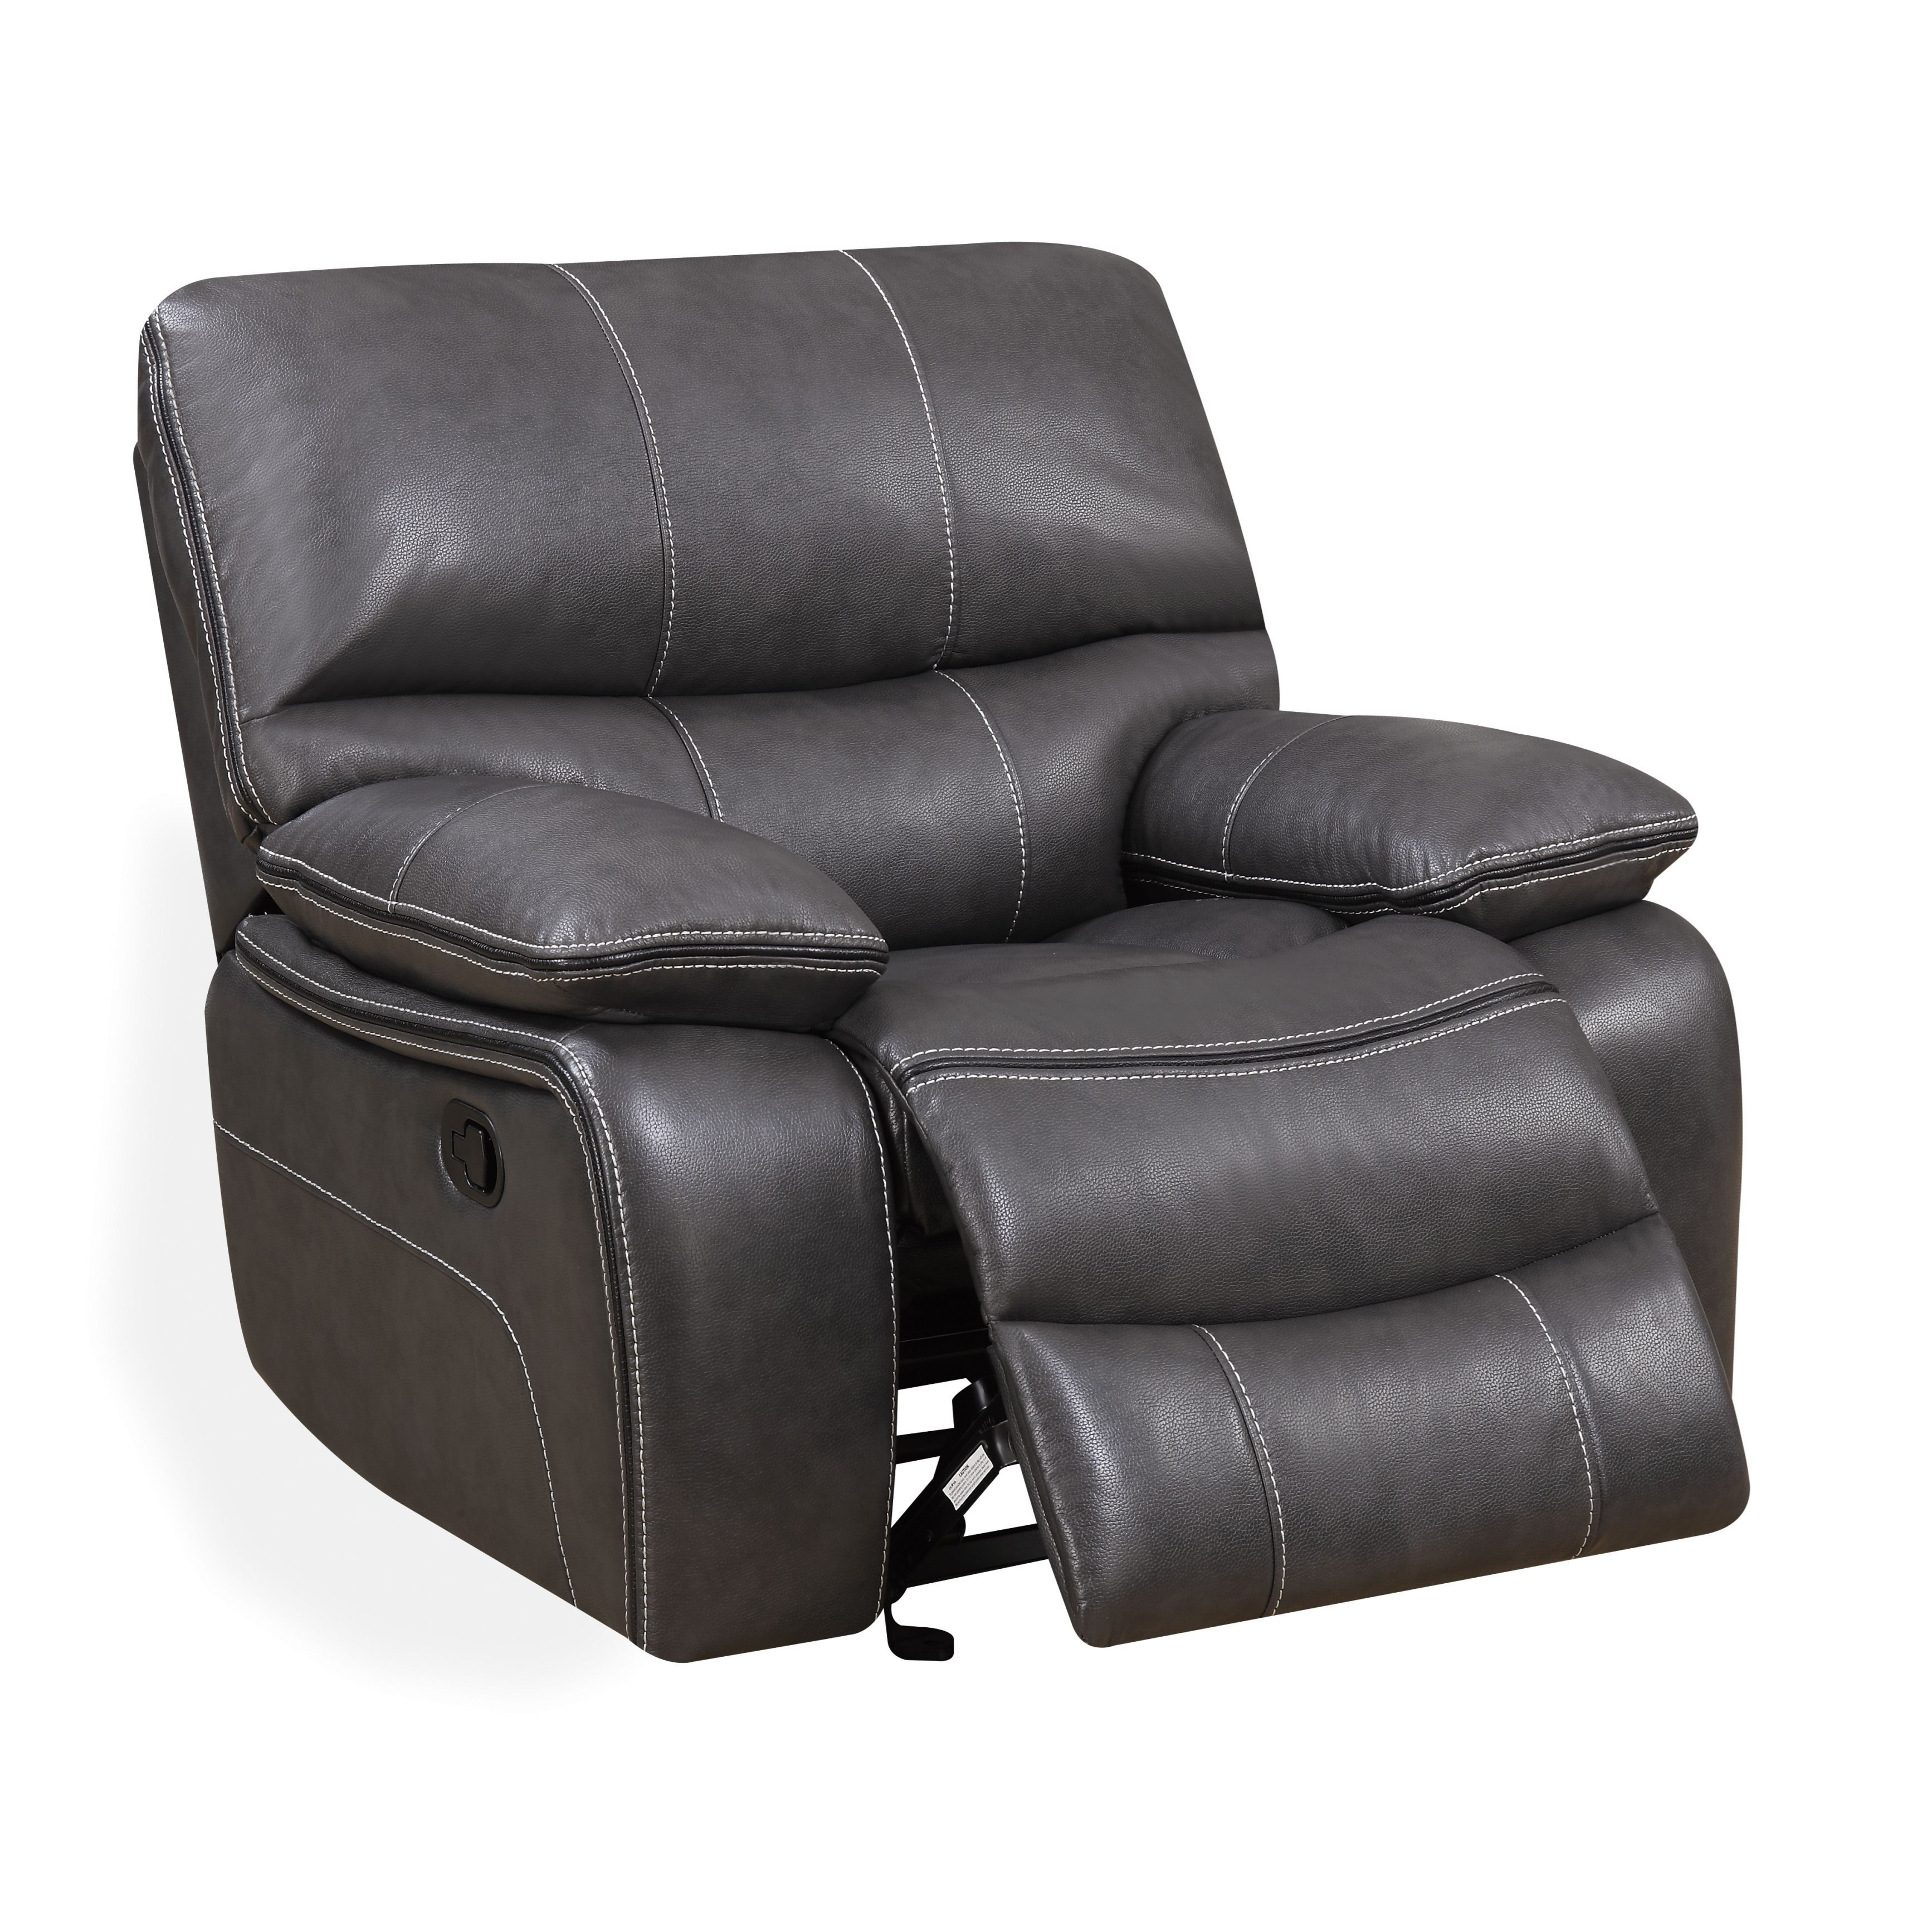 This recliner chair is offered in an elegant medium grey, making coordinating room decor effortless and enjoyable. If your living room/den/loft area needs a change of scenery, this charming glider/recliner chair is the perfect choice for your home.